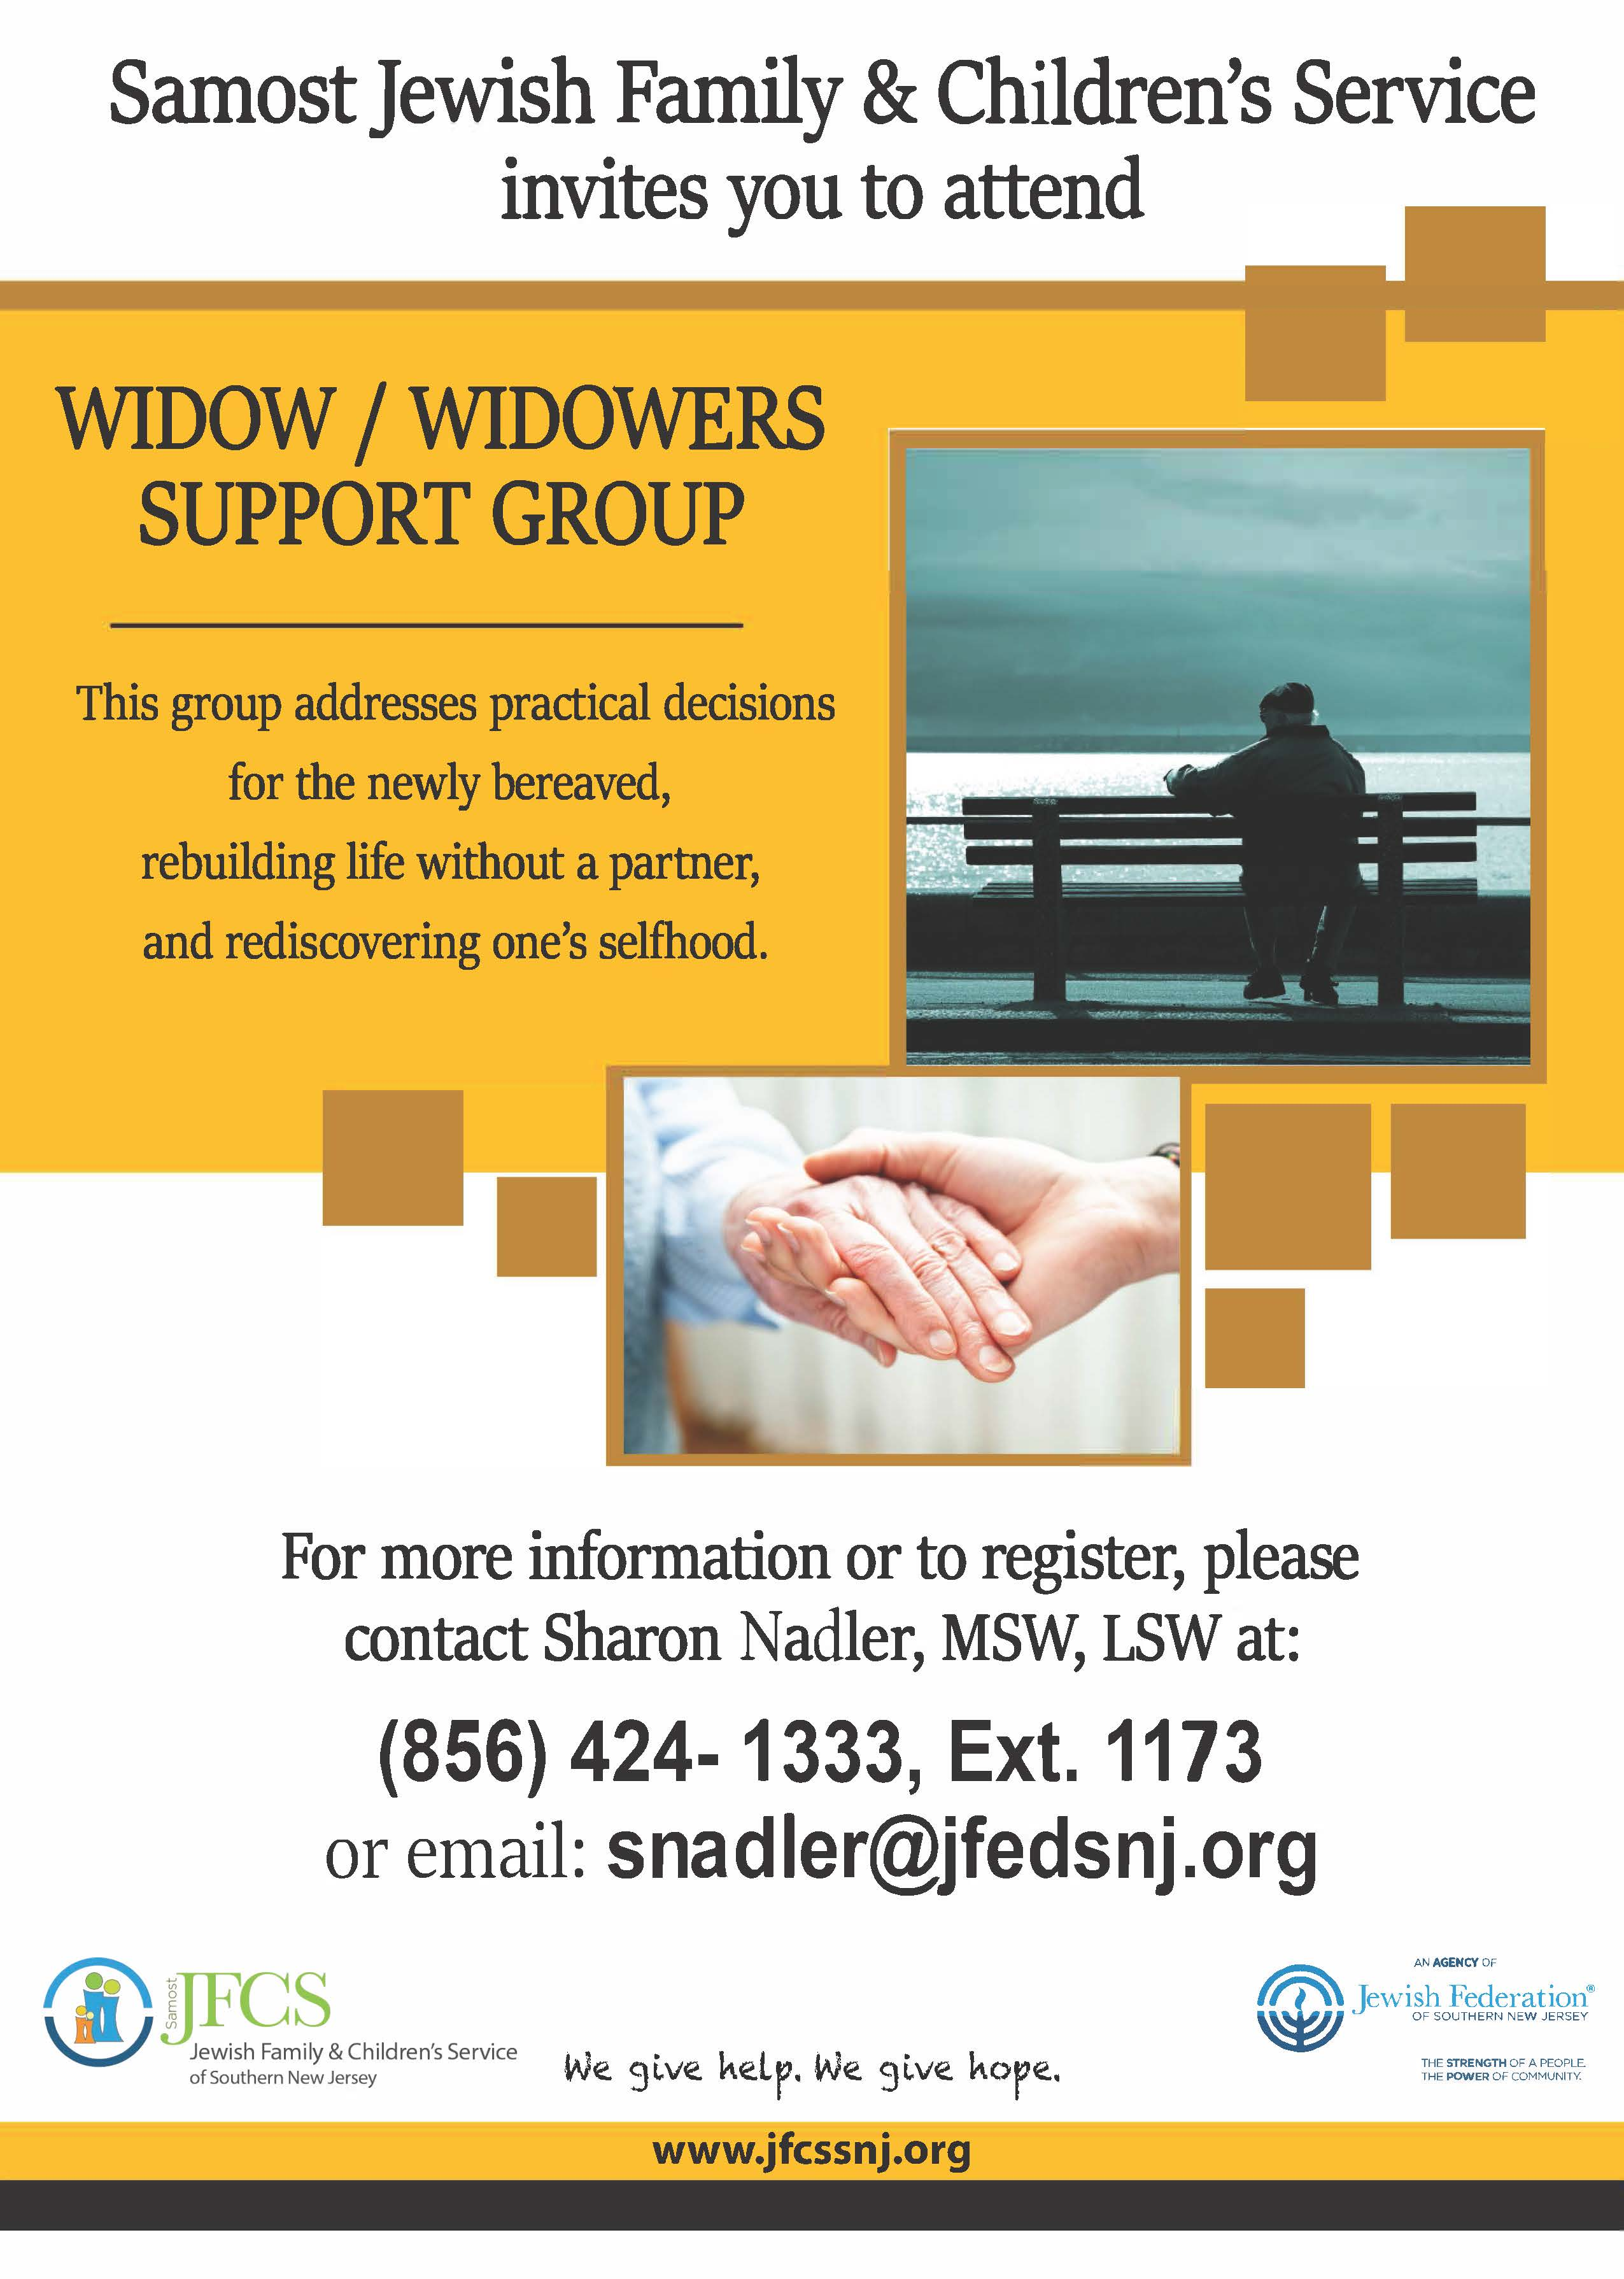 Widows and widowers dating service